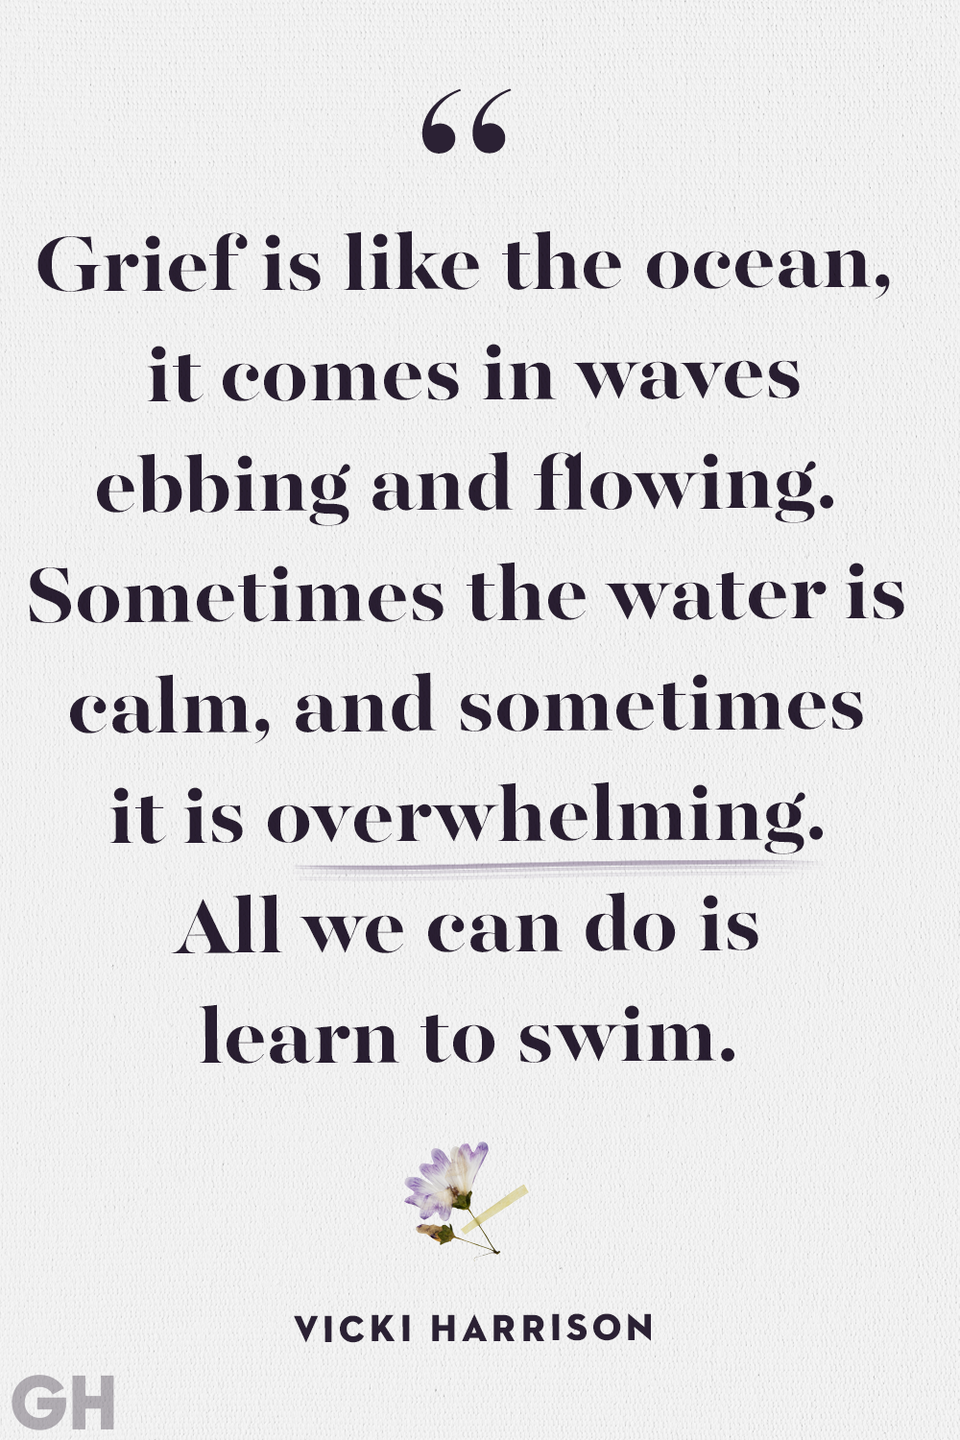 <p>Grief is like the ocean, it comes in waves ebbing and flowing. Sometimes the water is calm, and sometimes is is overwhelming. All we can do is learn to swim.</p>